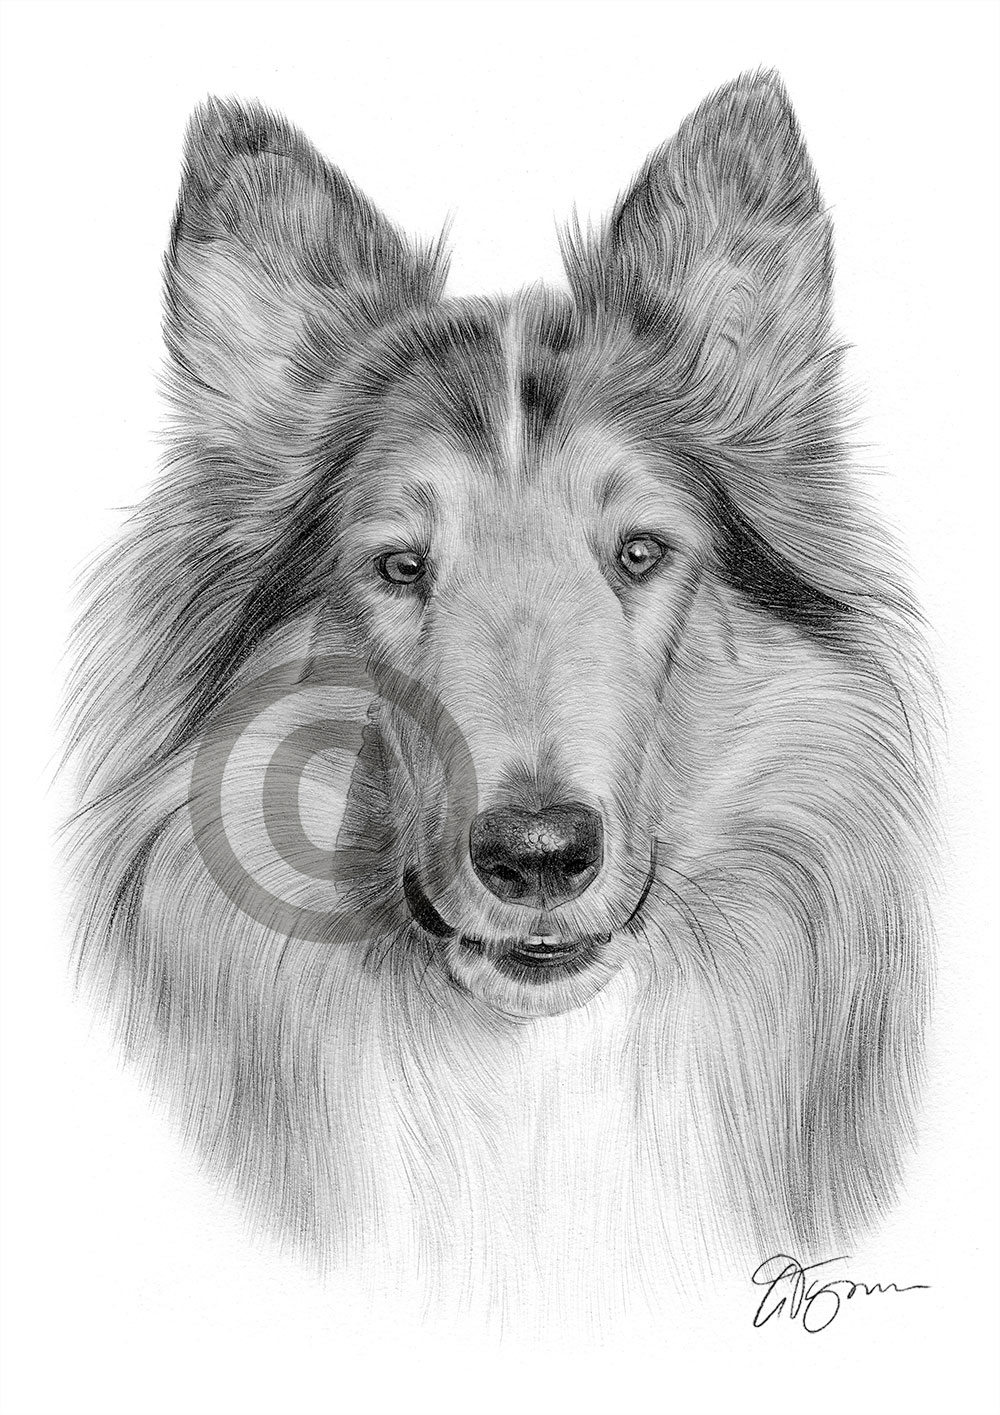 Adult Rough Collie pencil drawing by artist Gary Tymon